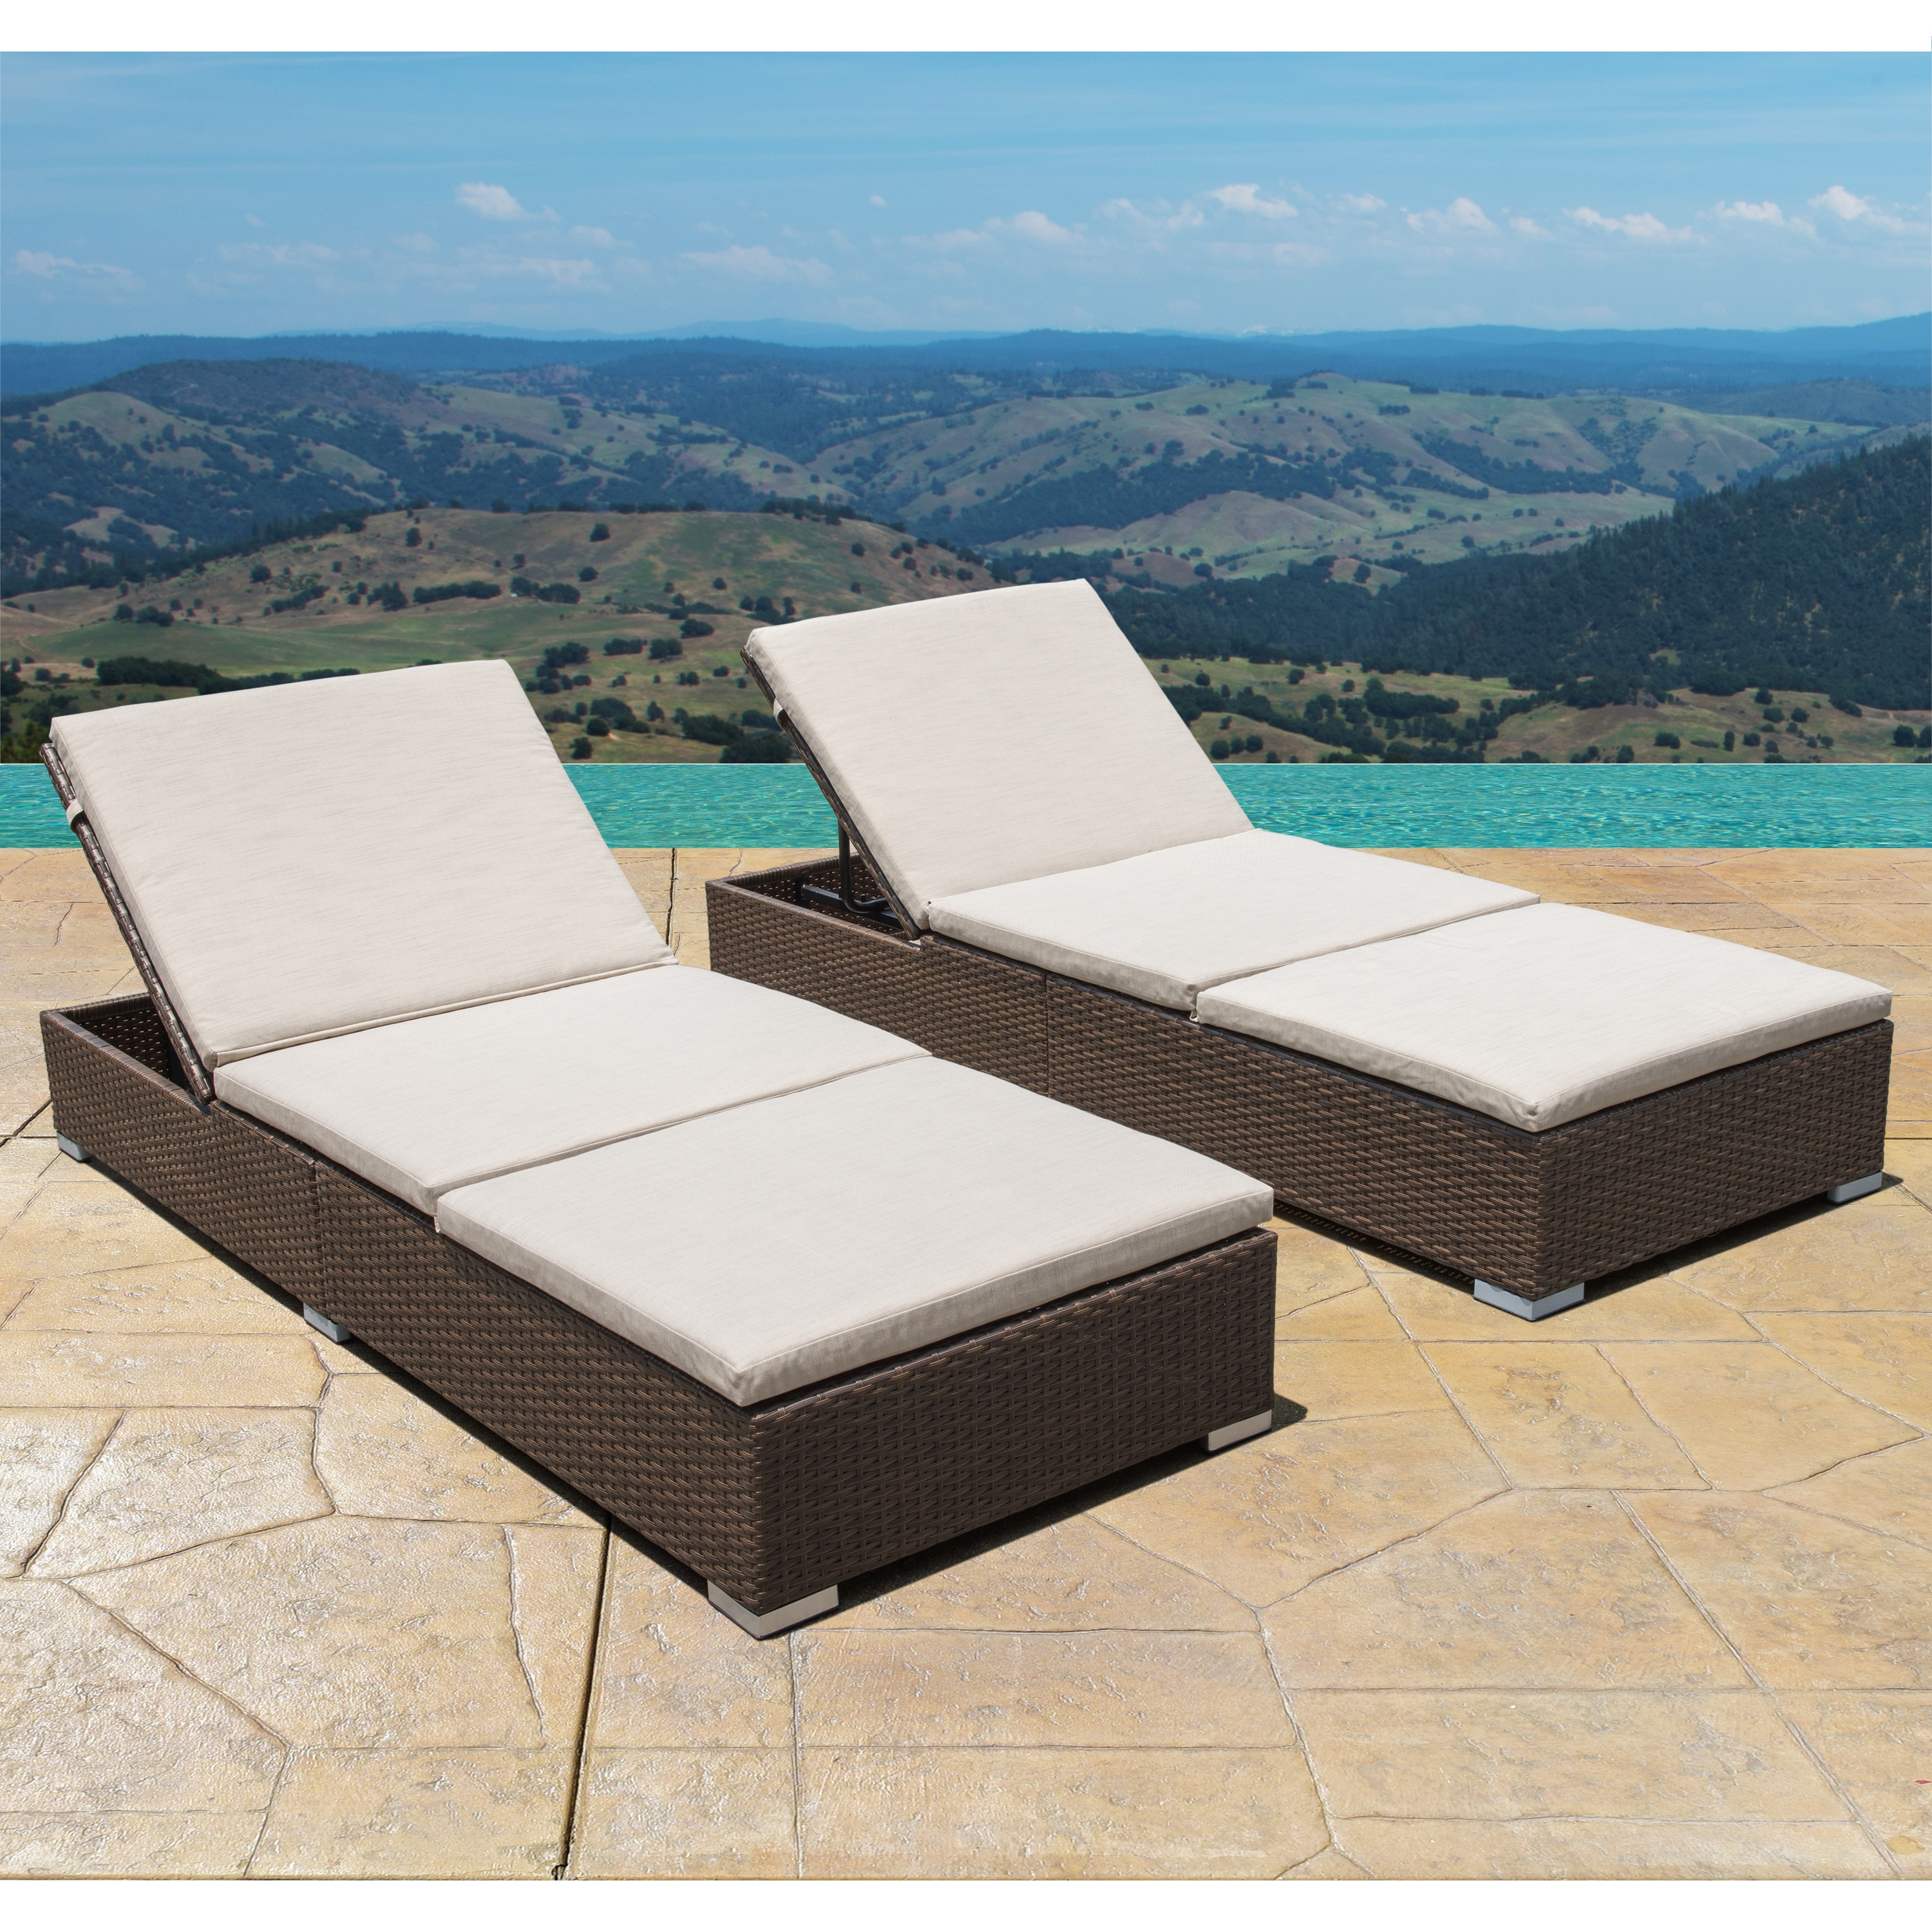 lounge chaise by free product garden christopher outdoor knight with lounges cushion today shipping overstock jamaica home